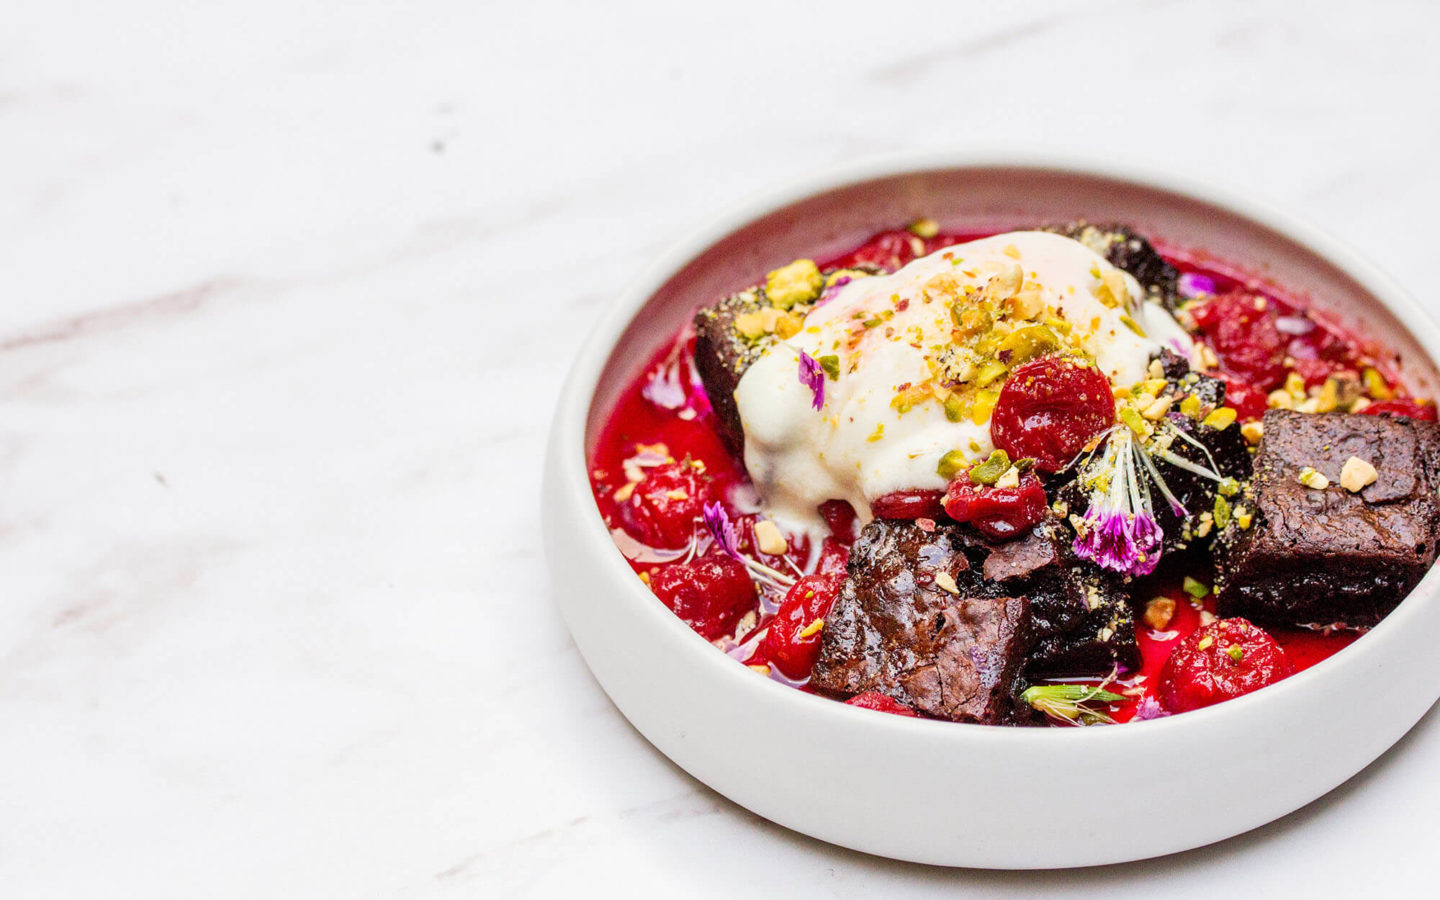 cherry & chocolate labneh ice cream sundae